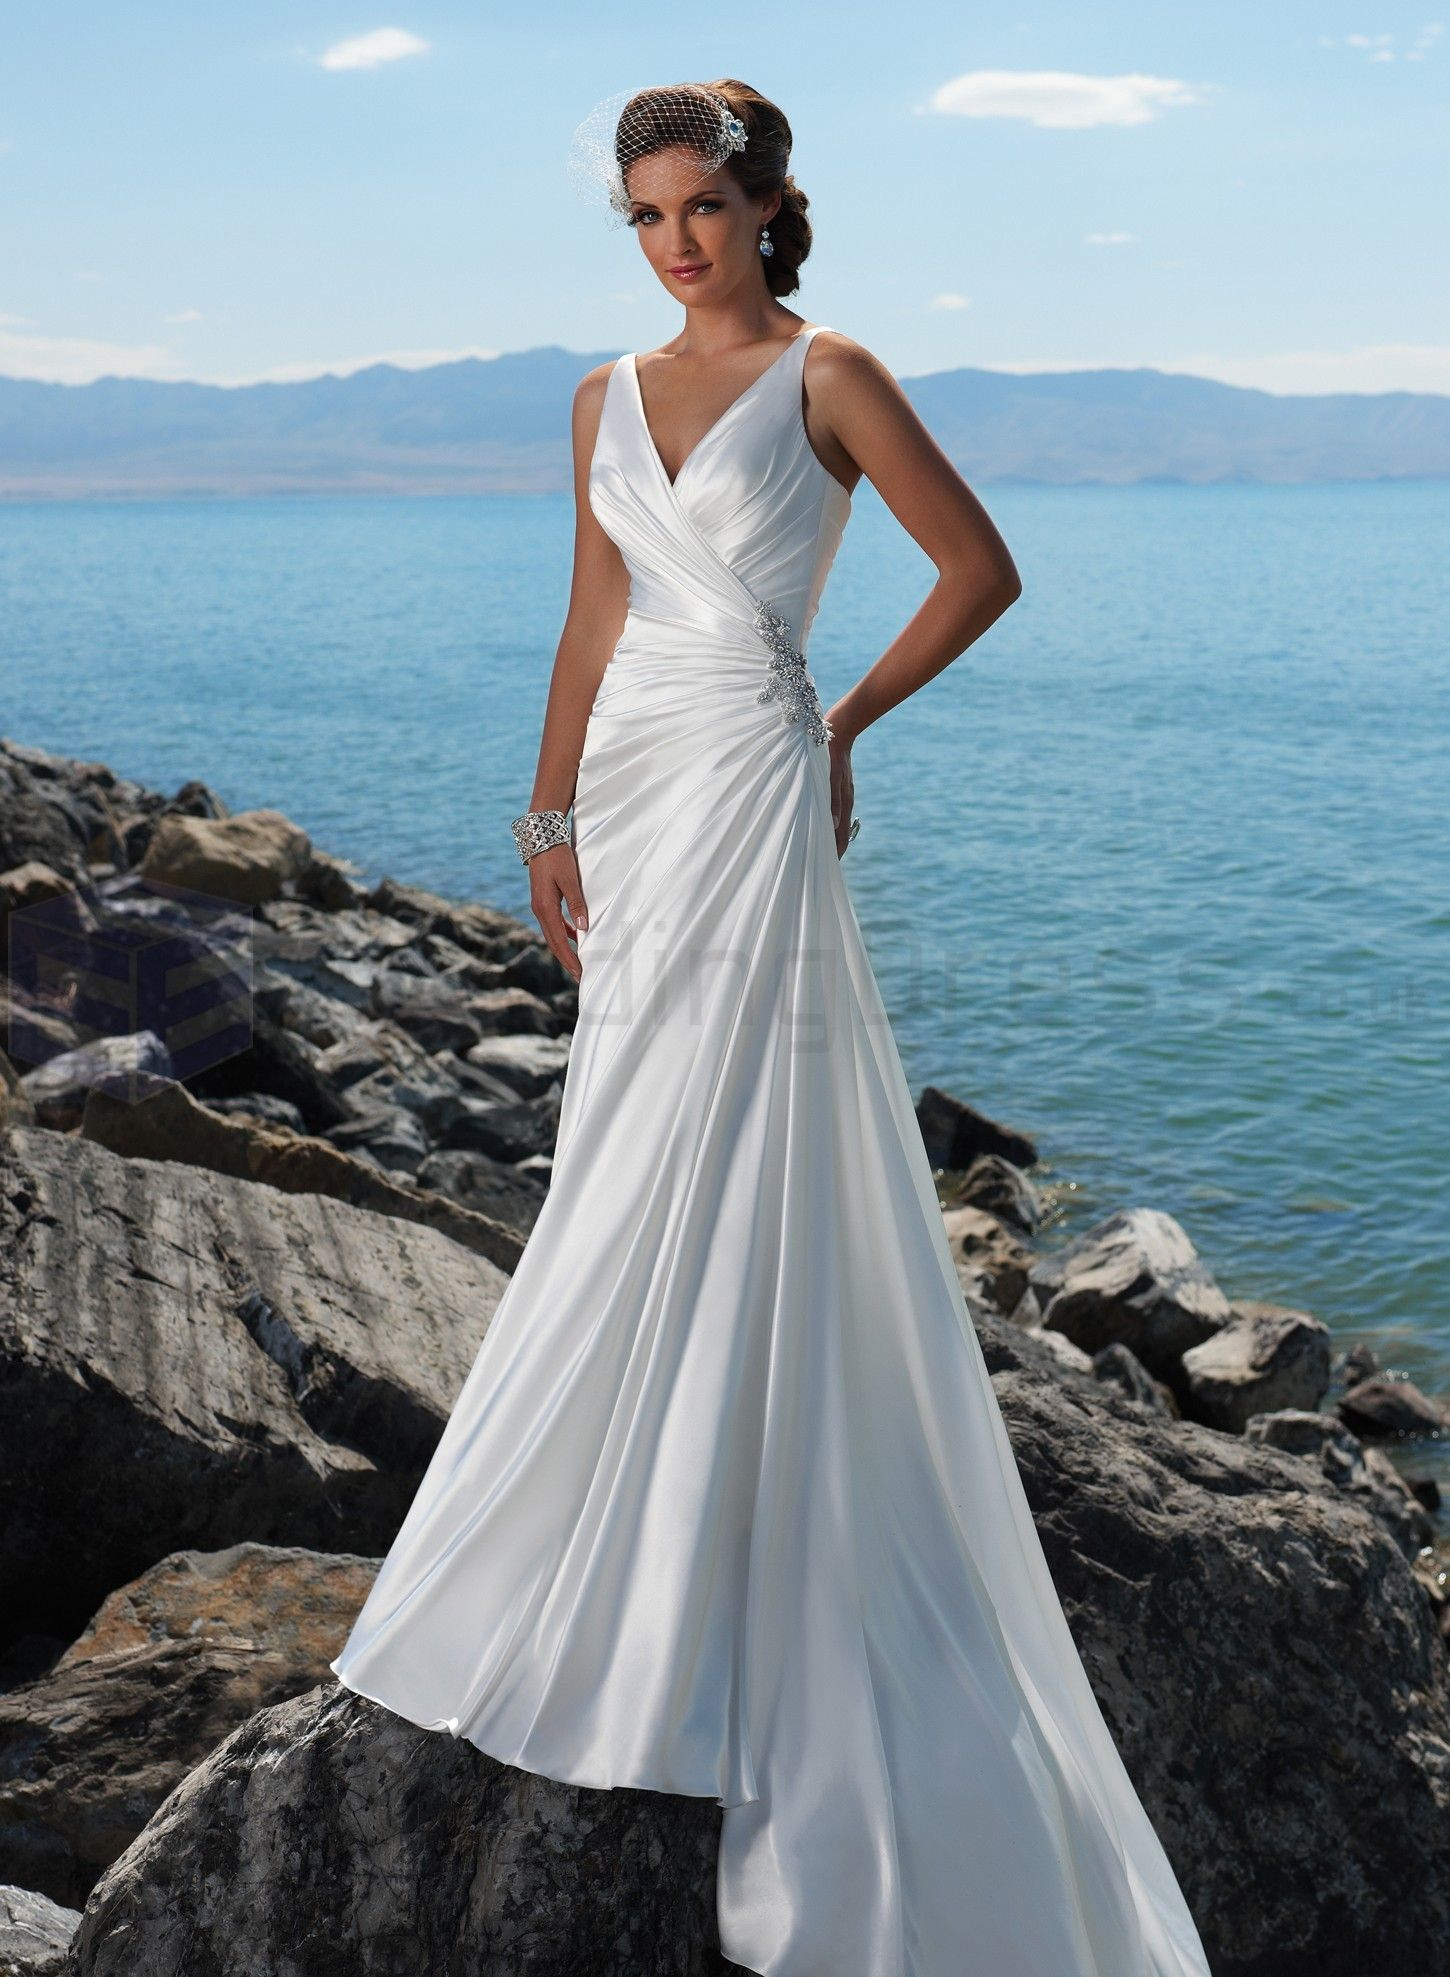 Outstanding Used Wedding Dresses Indianapolis Ideas - All Wedding ...